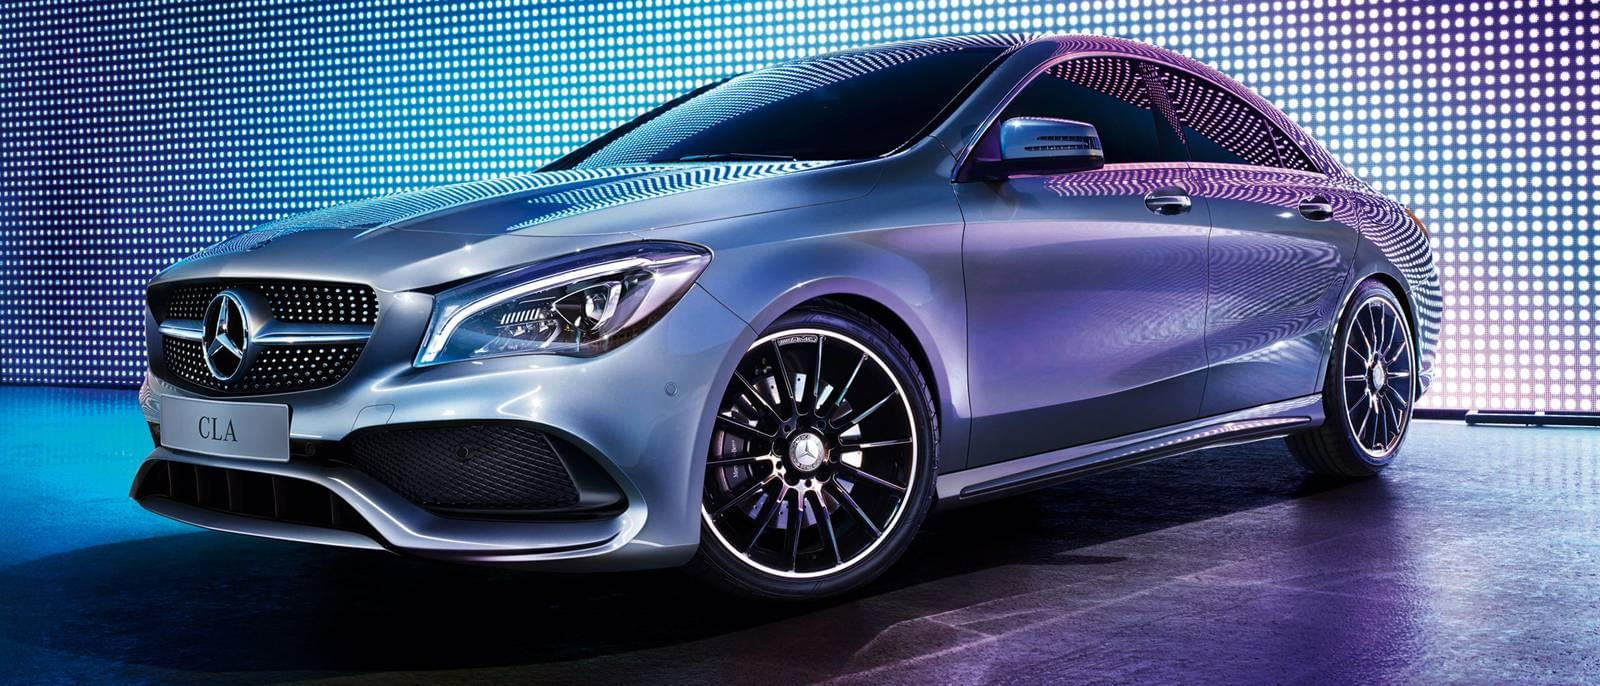 The 2017 mercedes benz cla coupe merges style and price for Mercedes benz cla coupe 2017